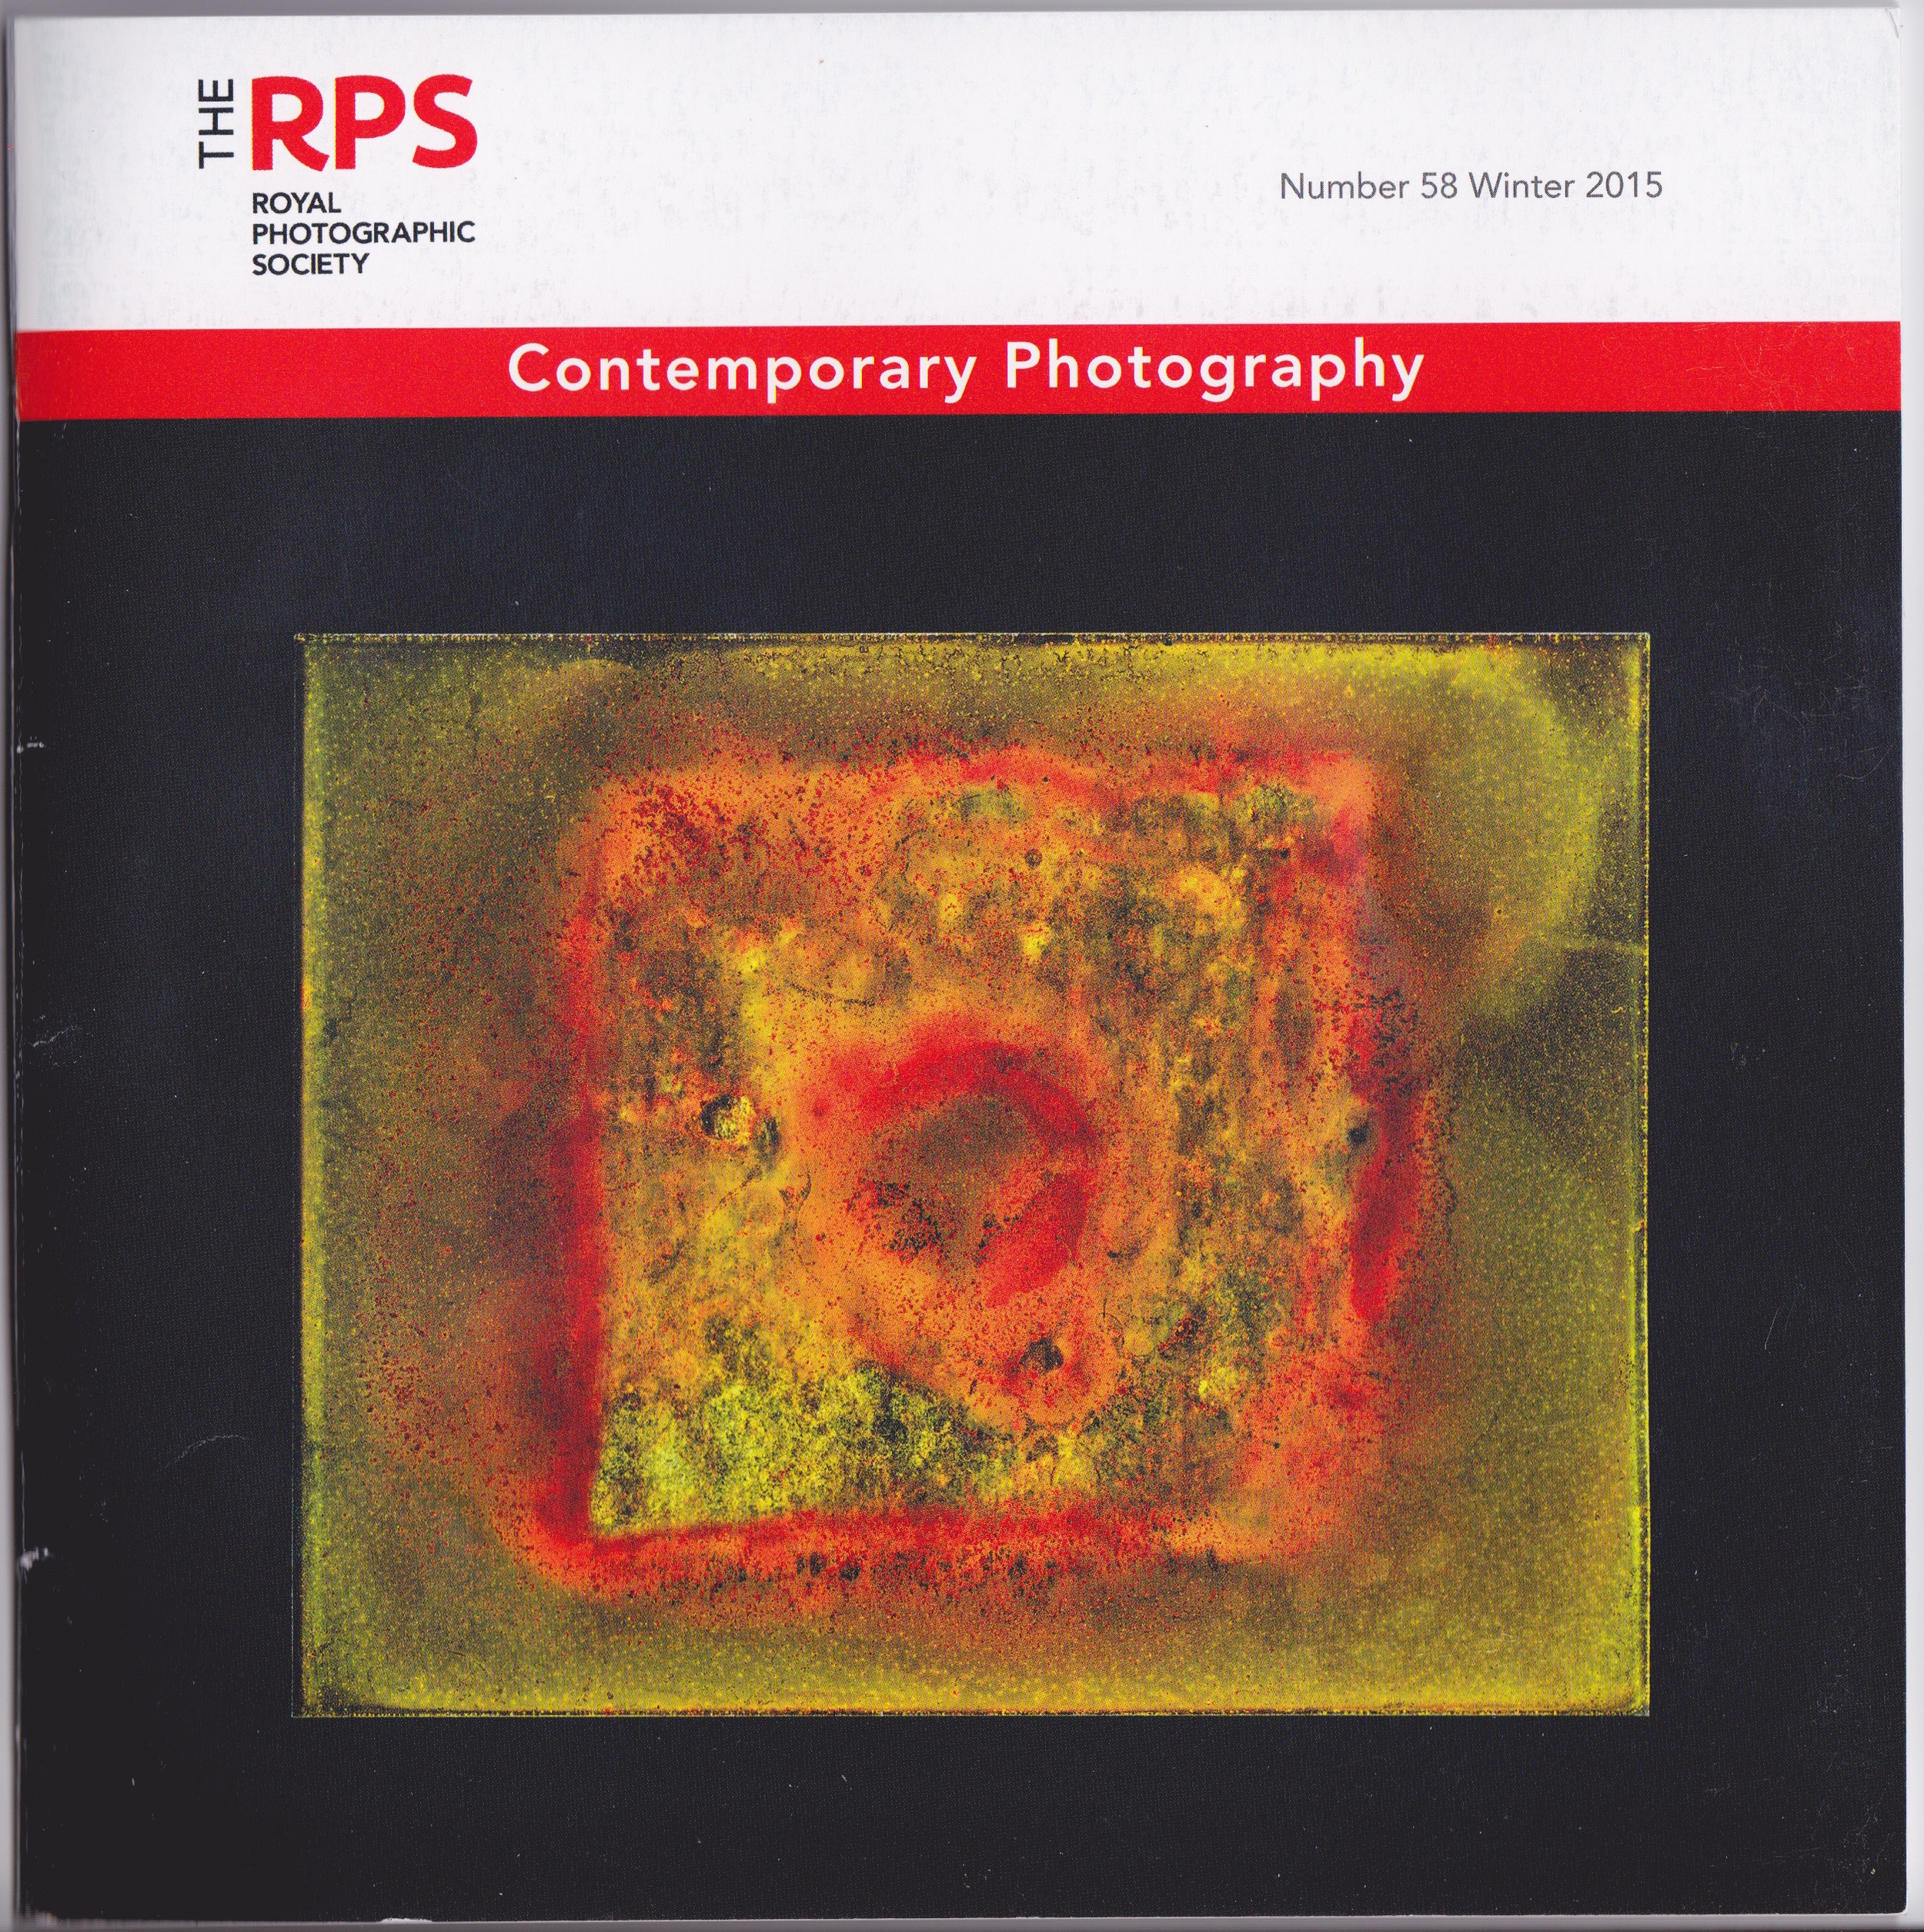 RPS Journal Article Cover.jpeg